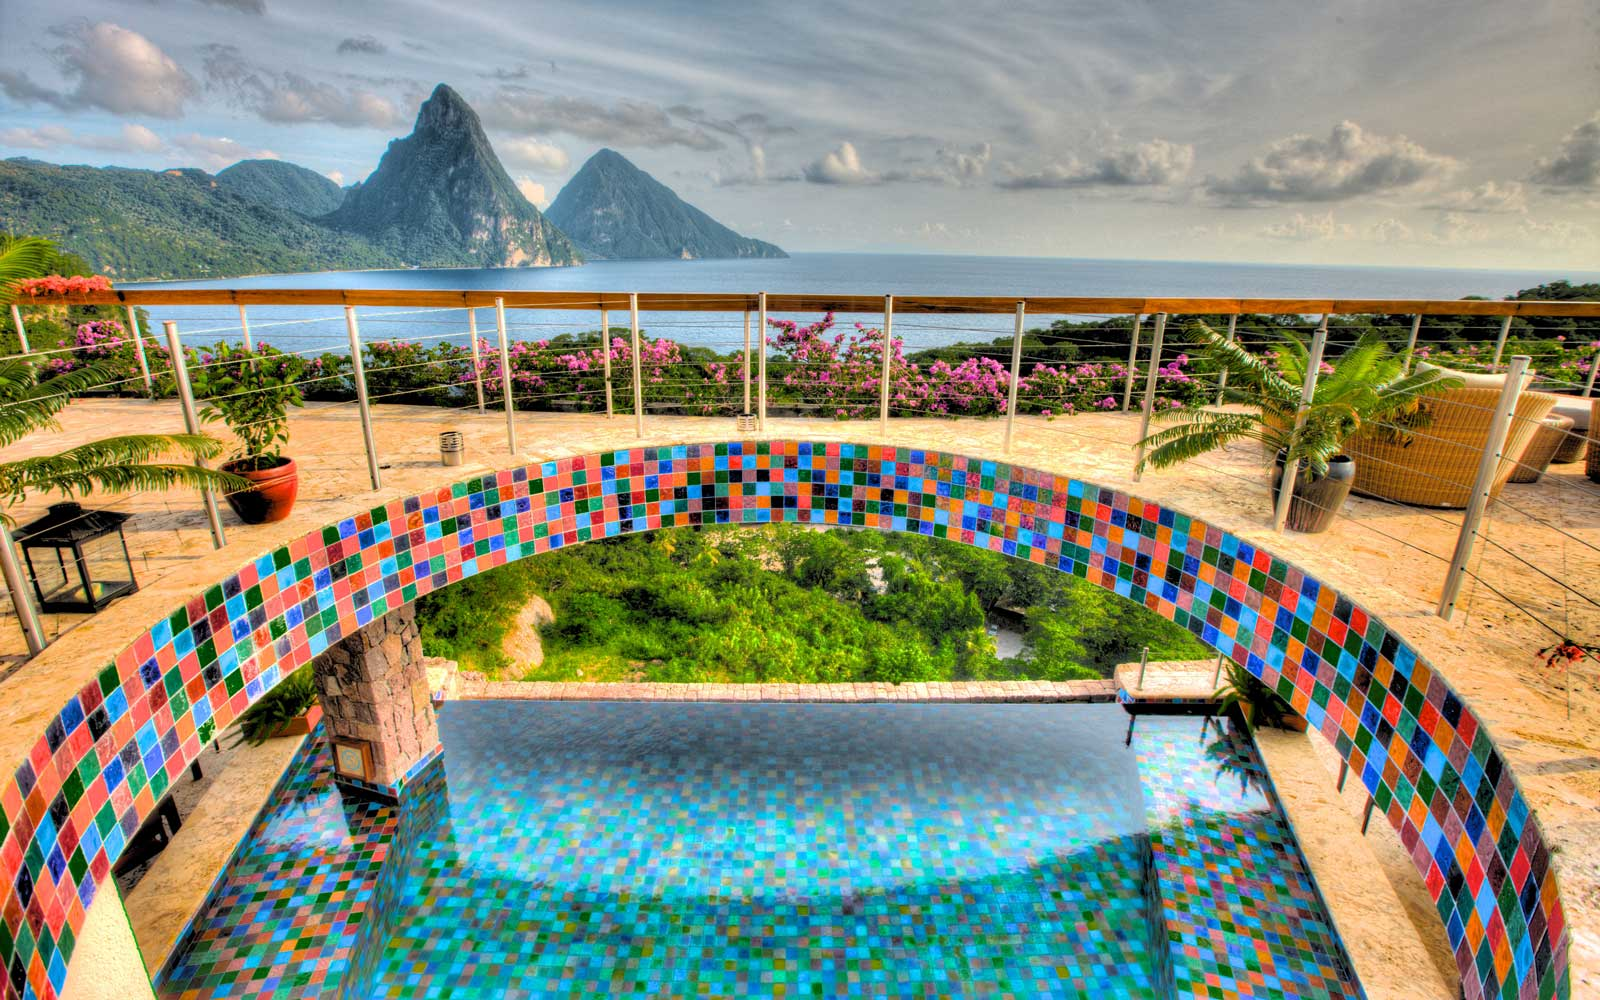 Aerial shot of the Jade Mountain